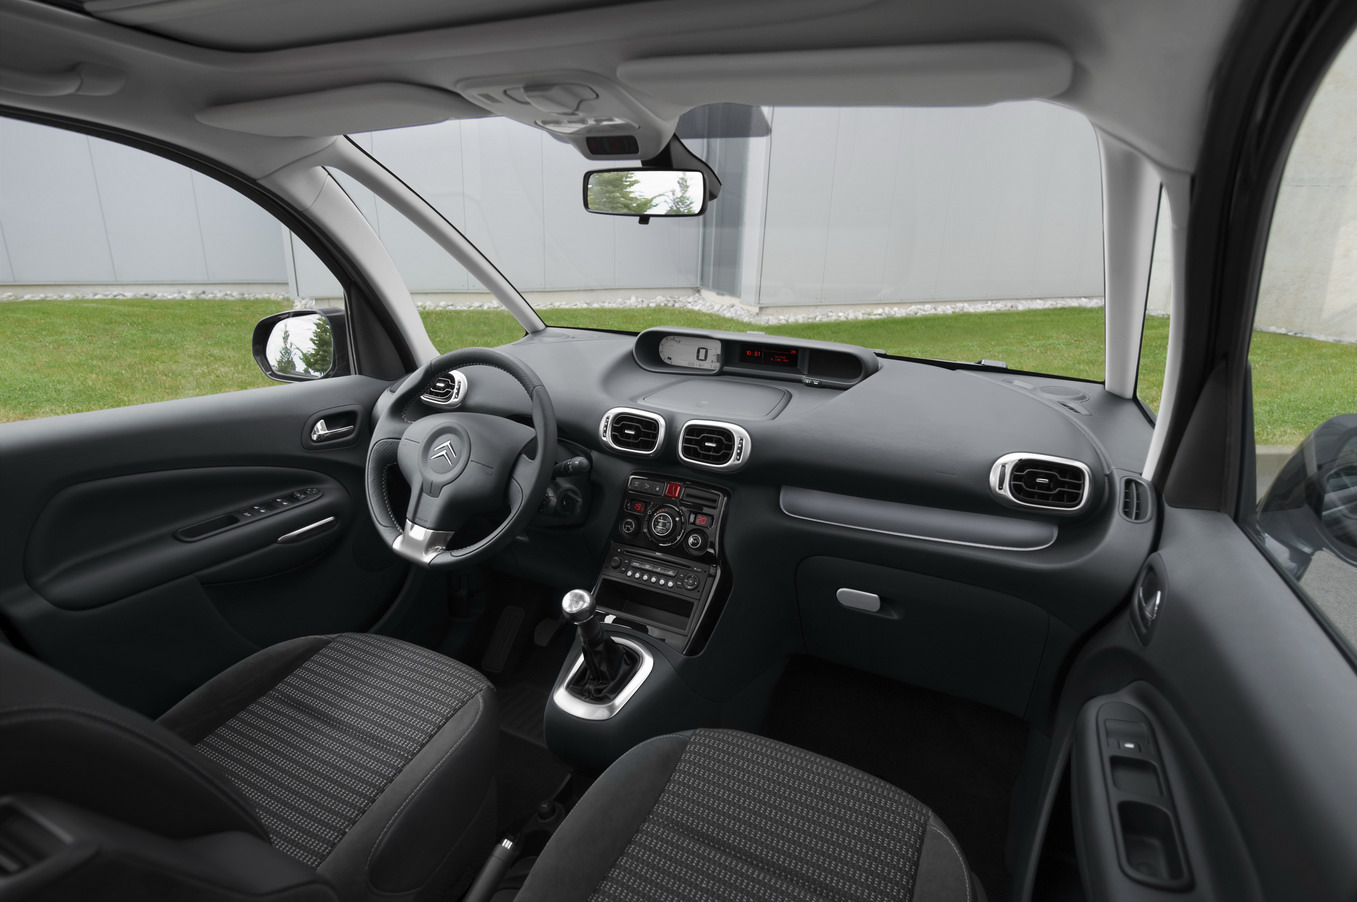 Citroen c3 picasso technical details history photos on for C4 picasso 2013 interieur